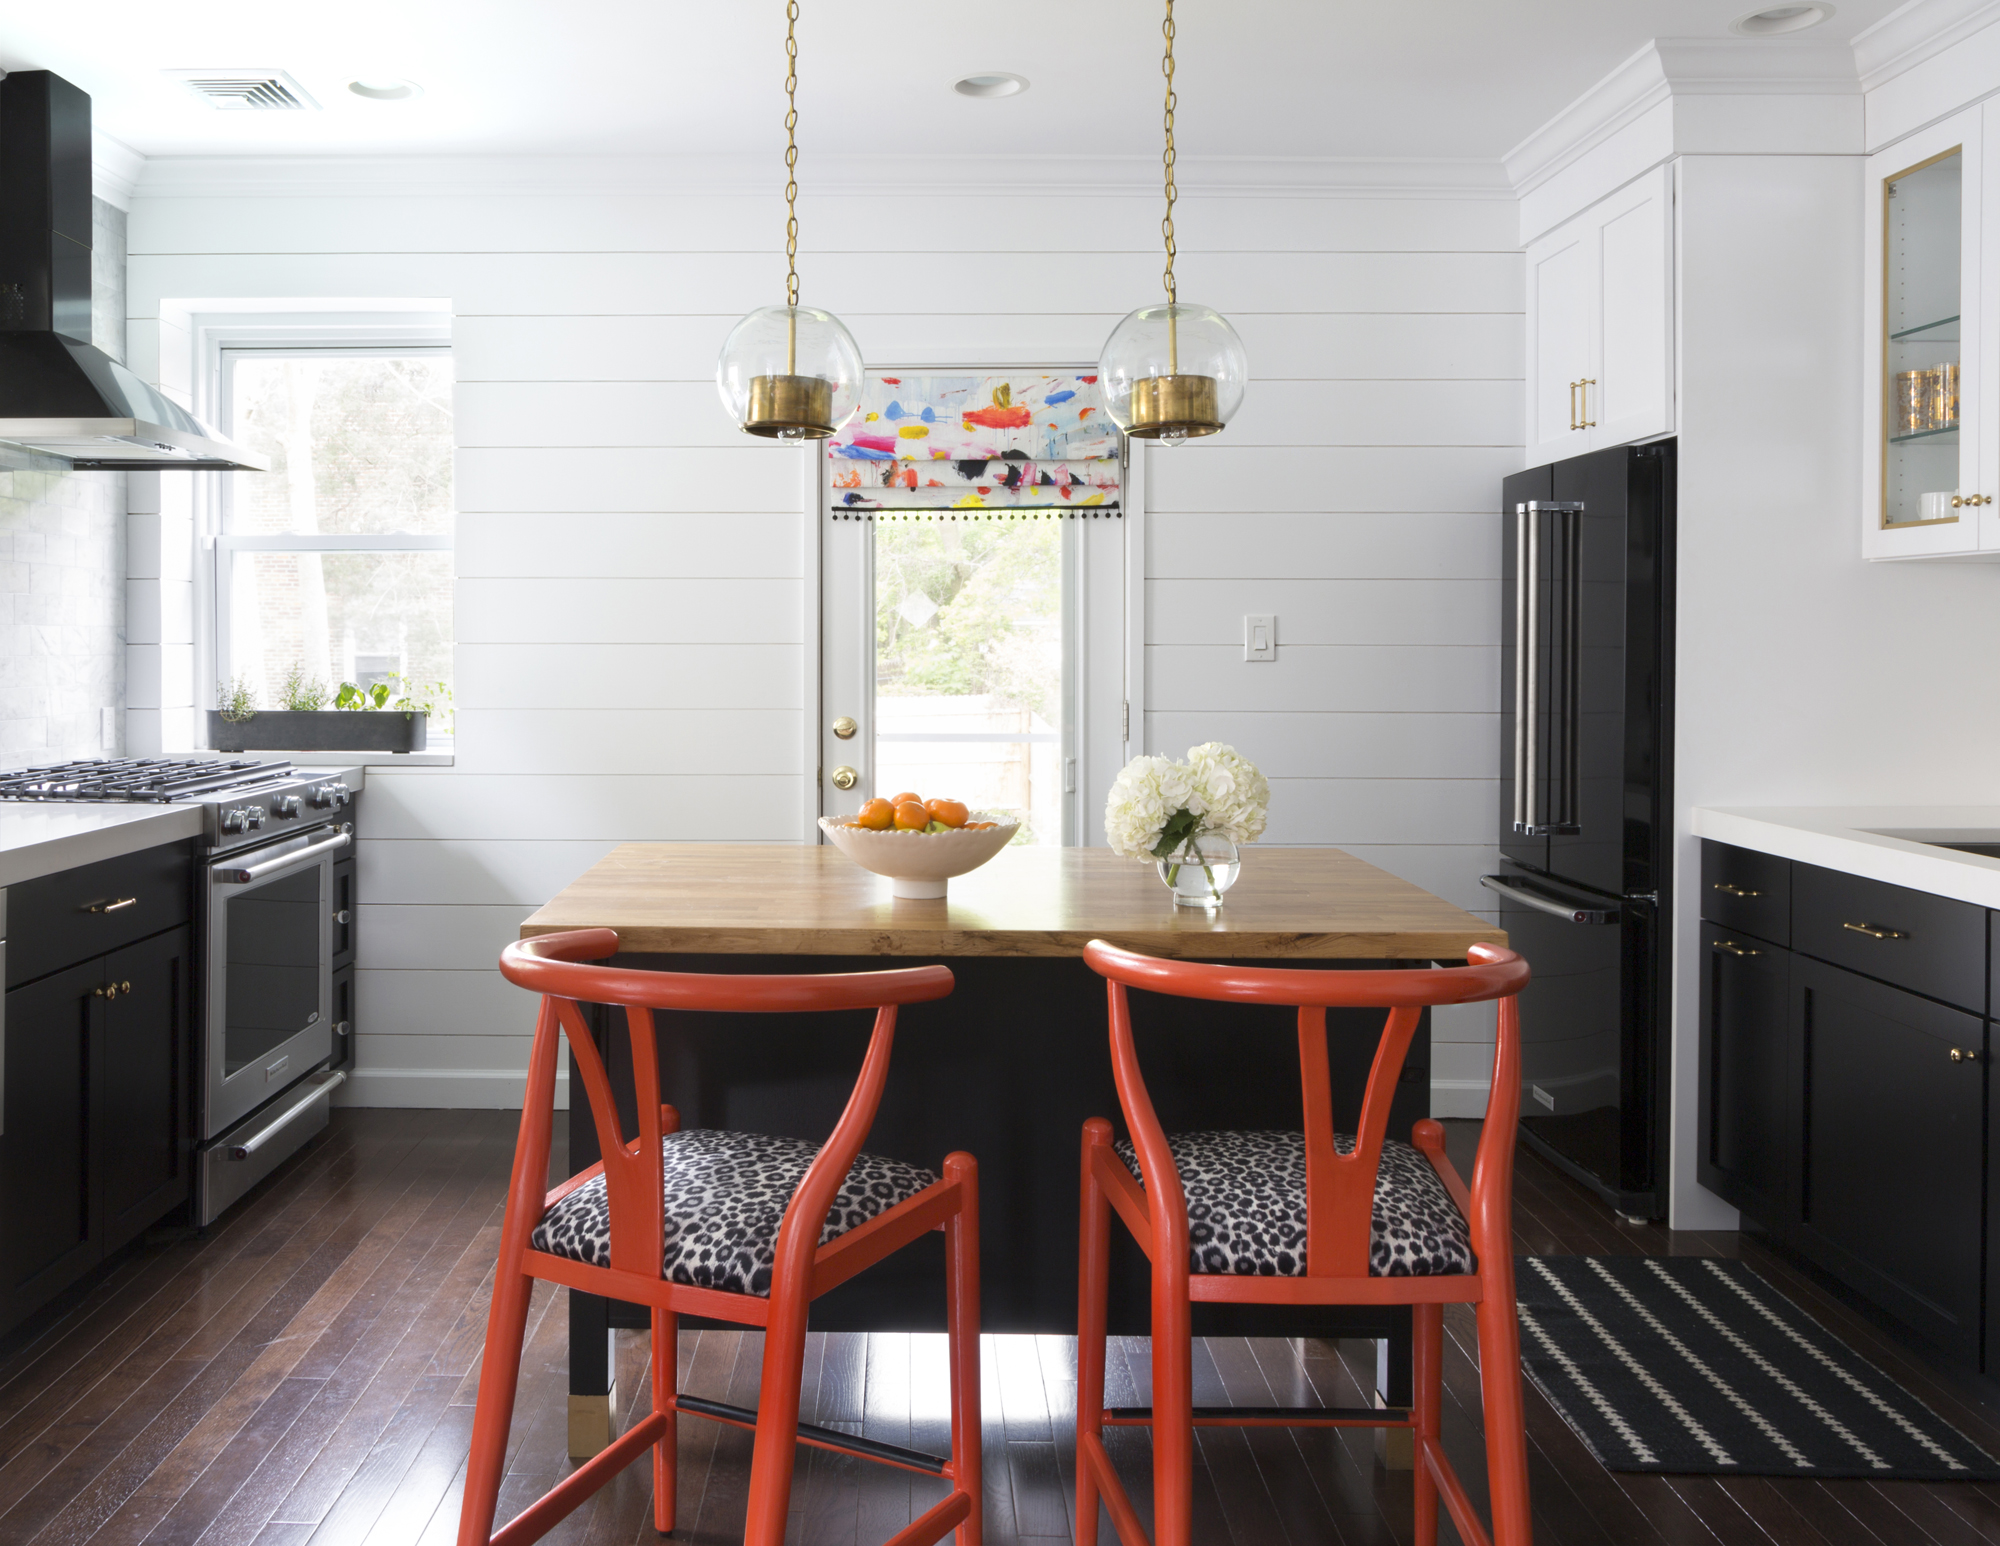 Design-Manifest-Kitchen-Black-cabinets-white-shiplap